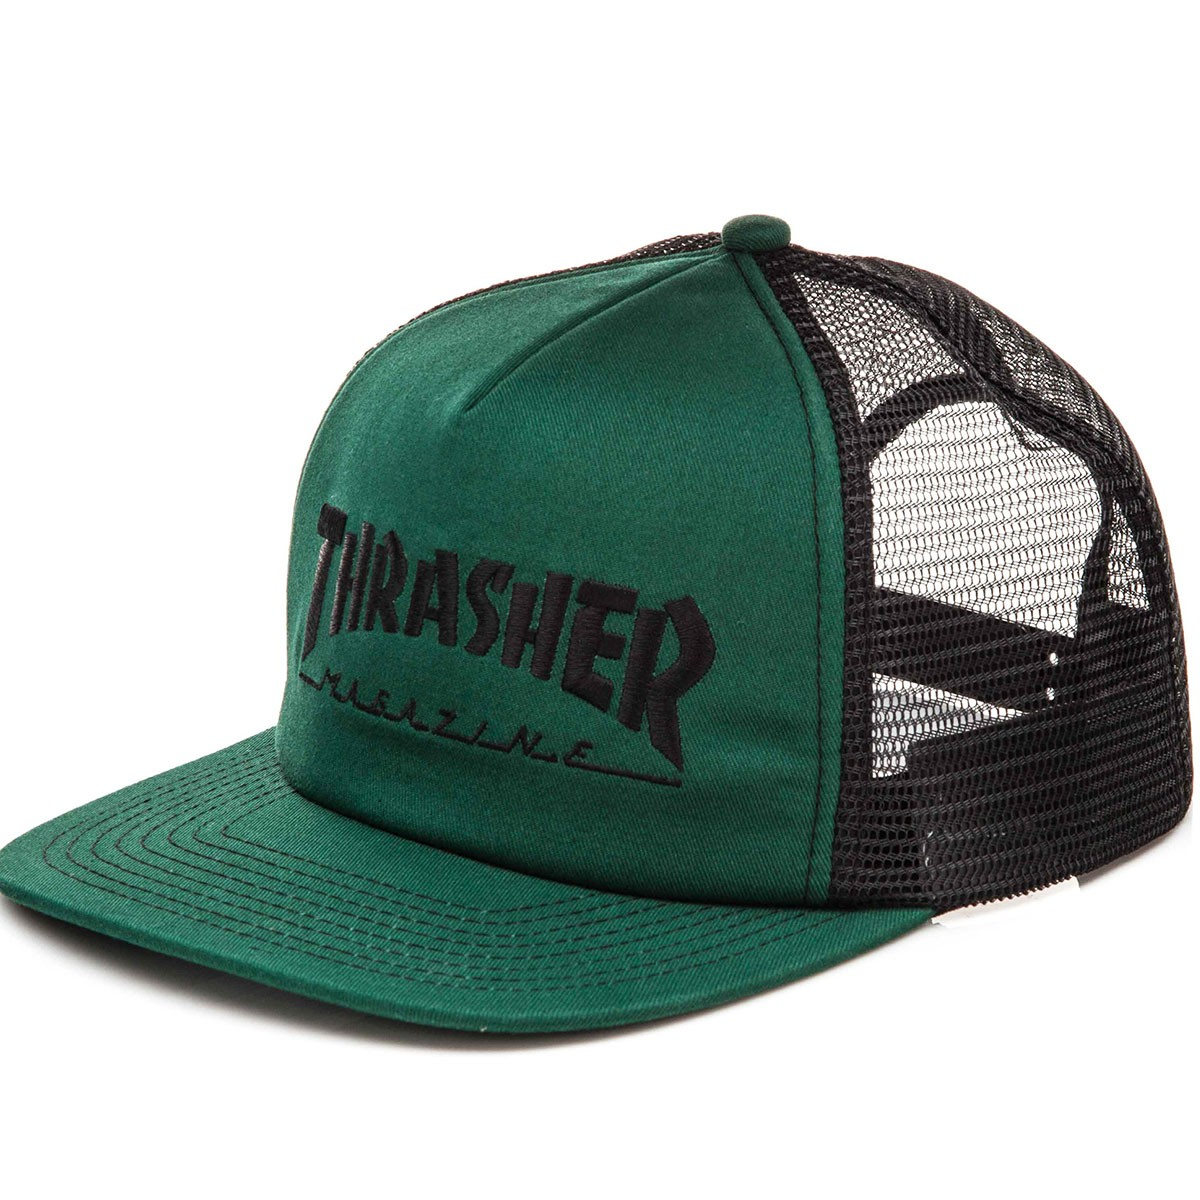 8380aeaab Thrasher Logo Embroidered Mesh Hat